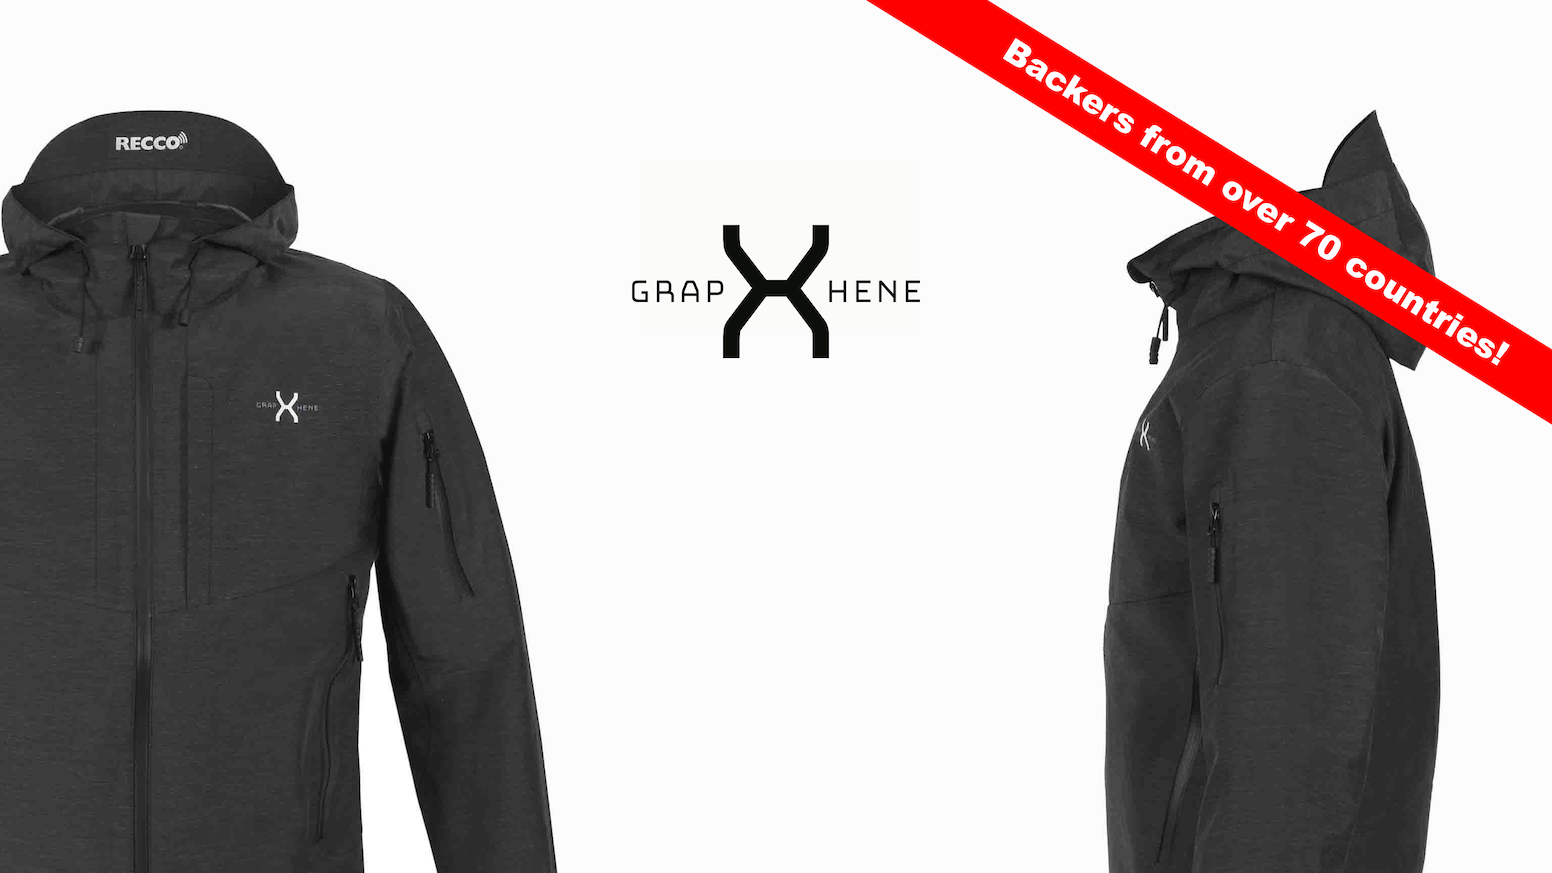 An all-around graphene-based 3-layer jacket: Breathable, Waterproof, Ultralight & Durable + state-of-the-art technology.